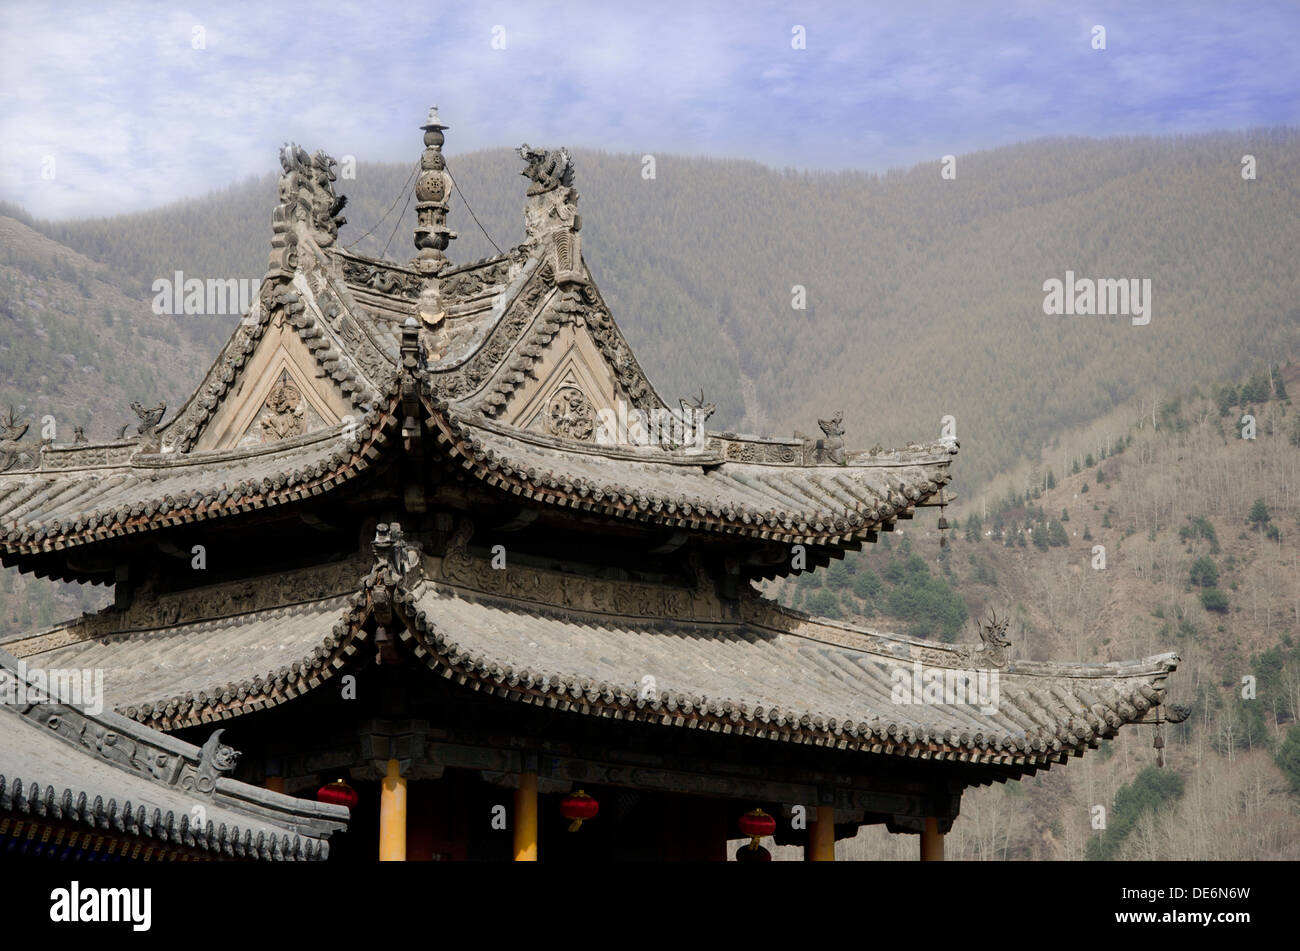 chinese pagoda roof stock photos chinese pagoda roof stock images